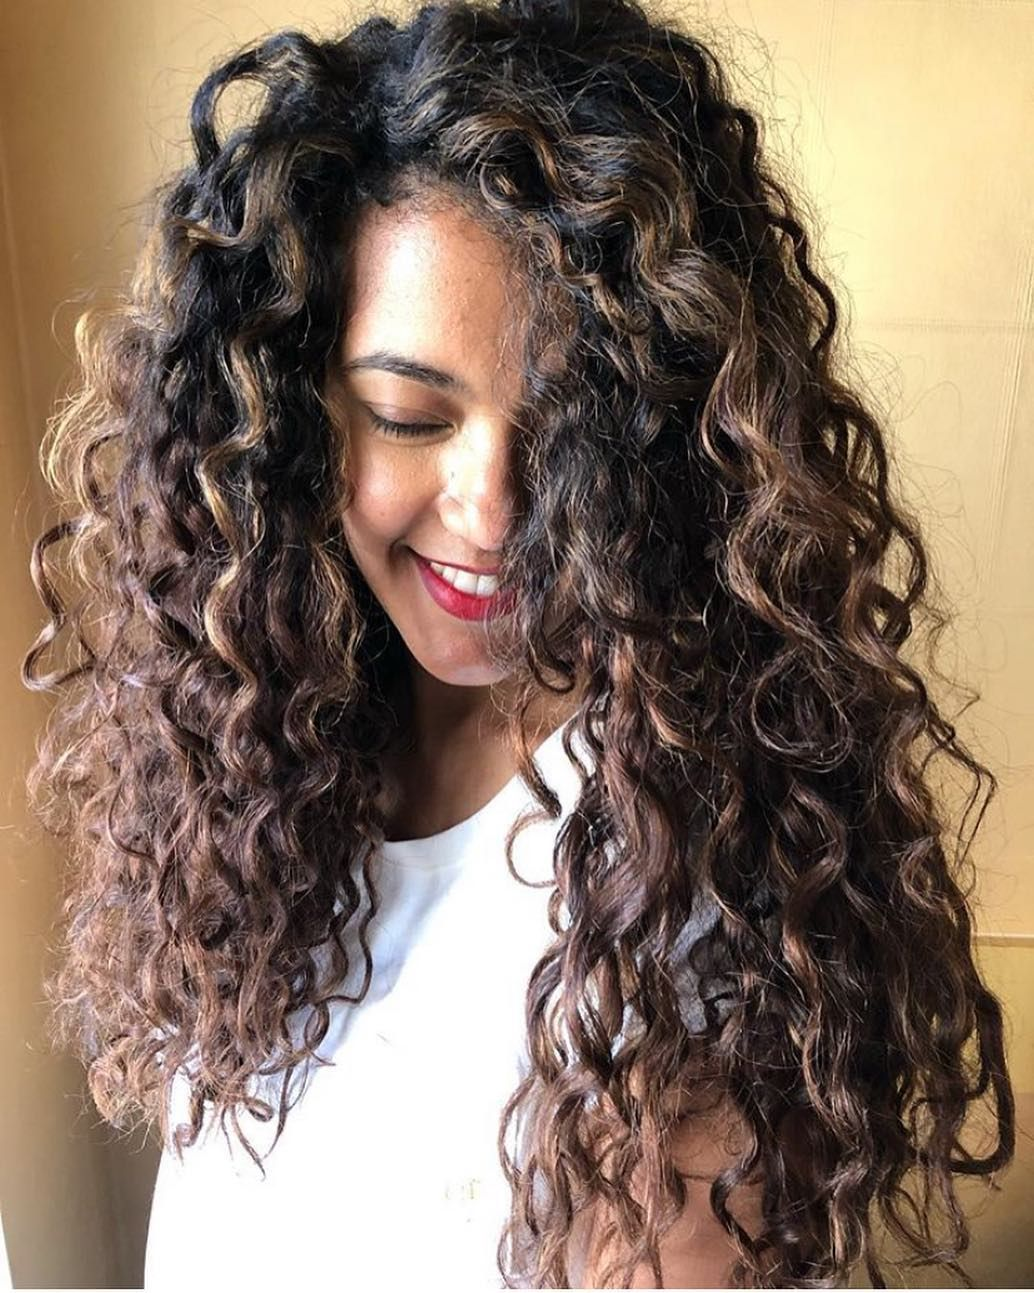 Dark Color Balayage On Haircuts For Long Curly Hair 2020 Curly Hair Styles Hair Lengths Hair Styles